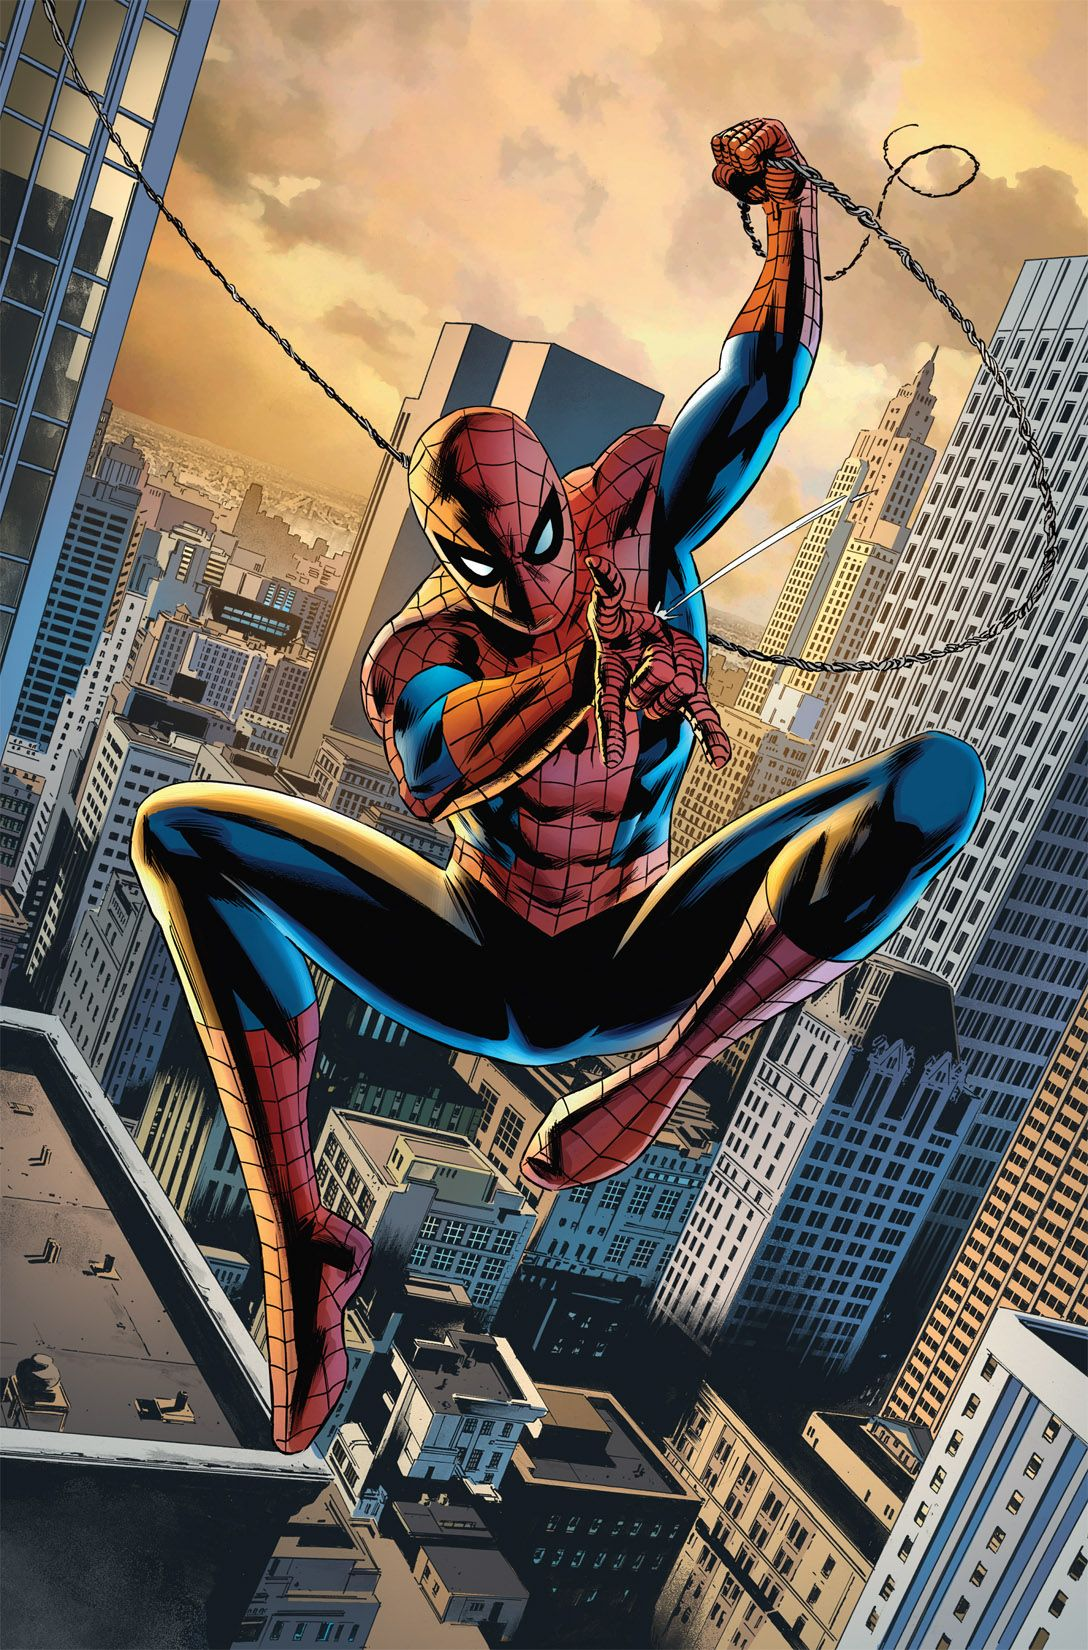 FF #1 - Marvel Comics  #spiderman #PeterParker #superhero #hero #art #illustration  #comicbook #secret #identity